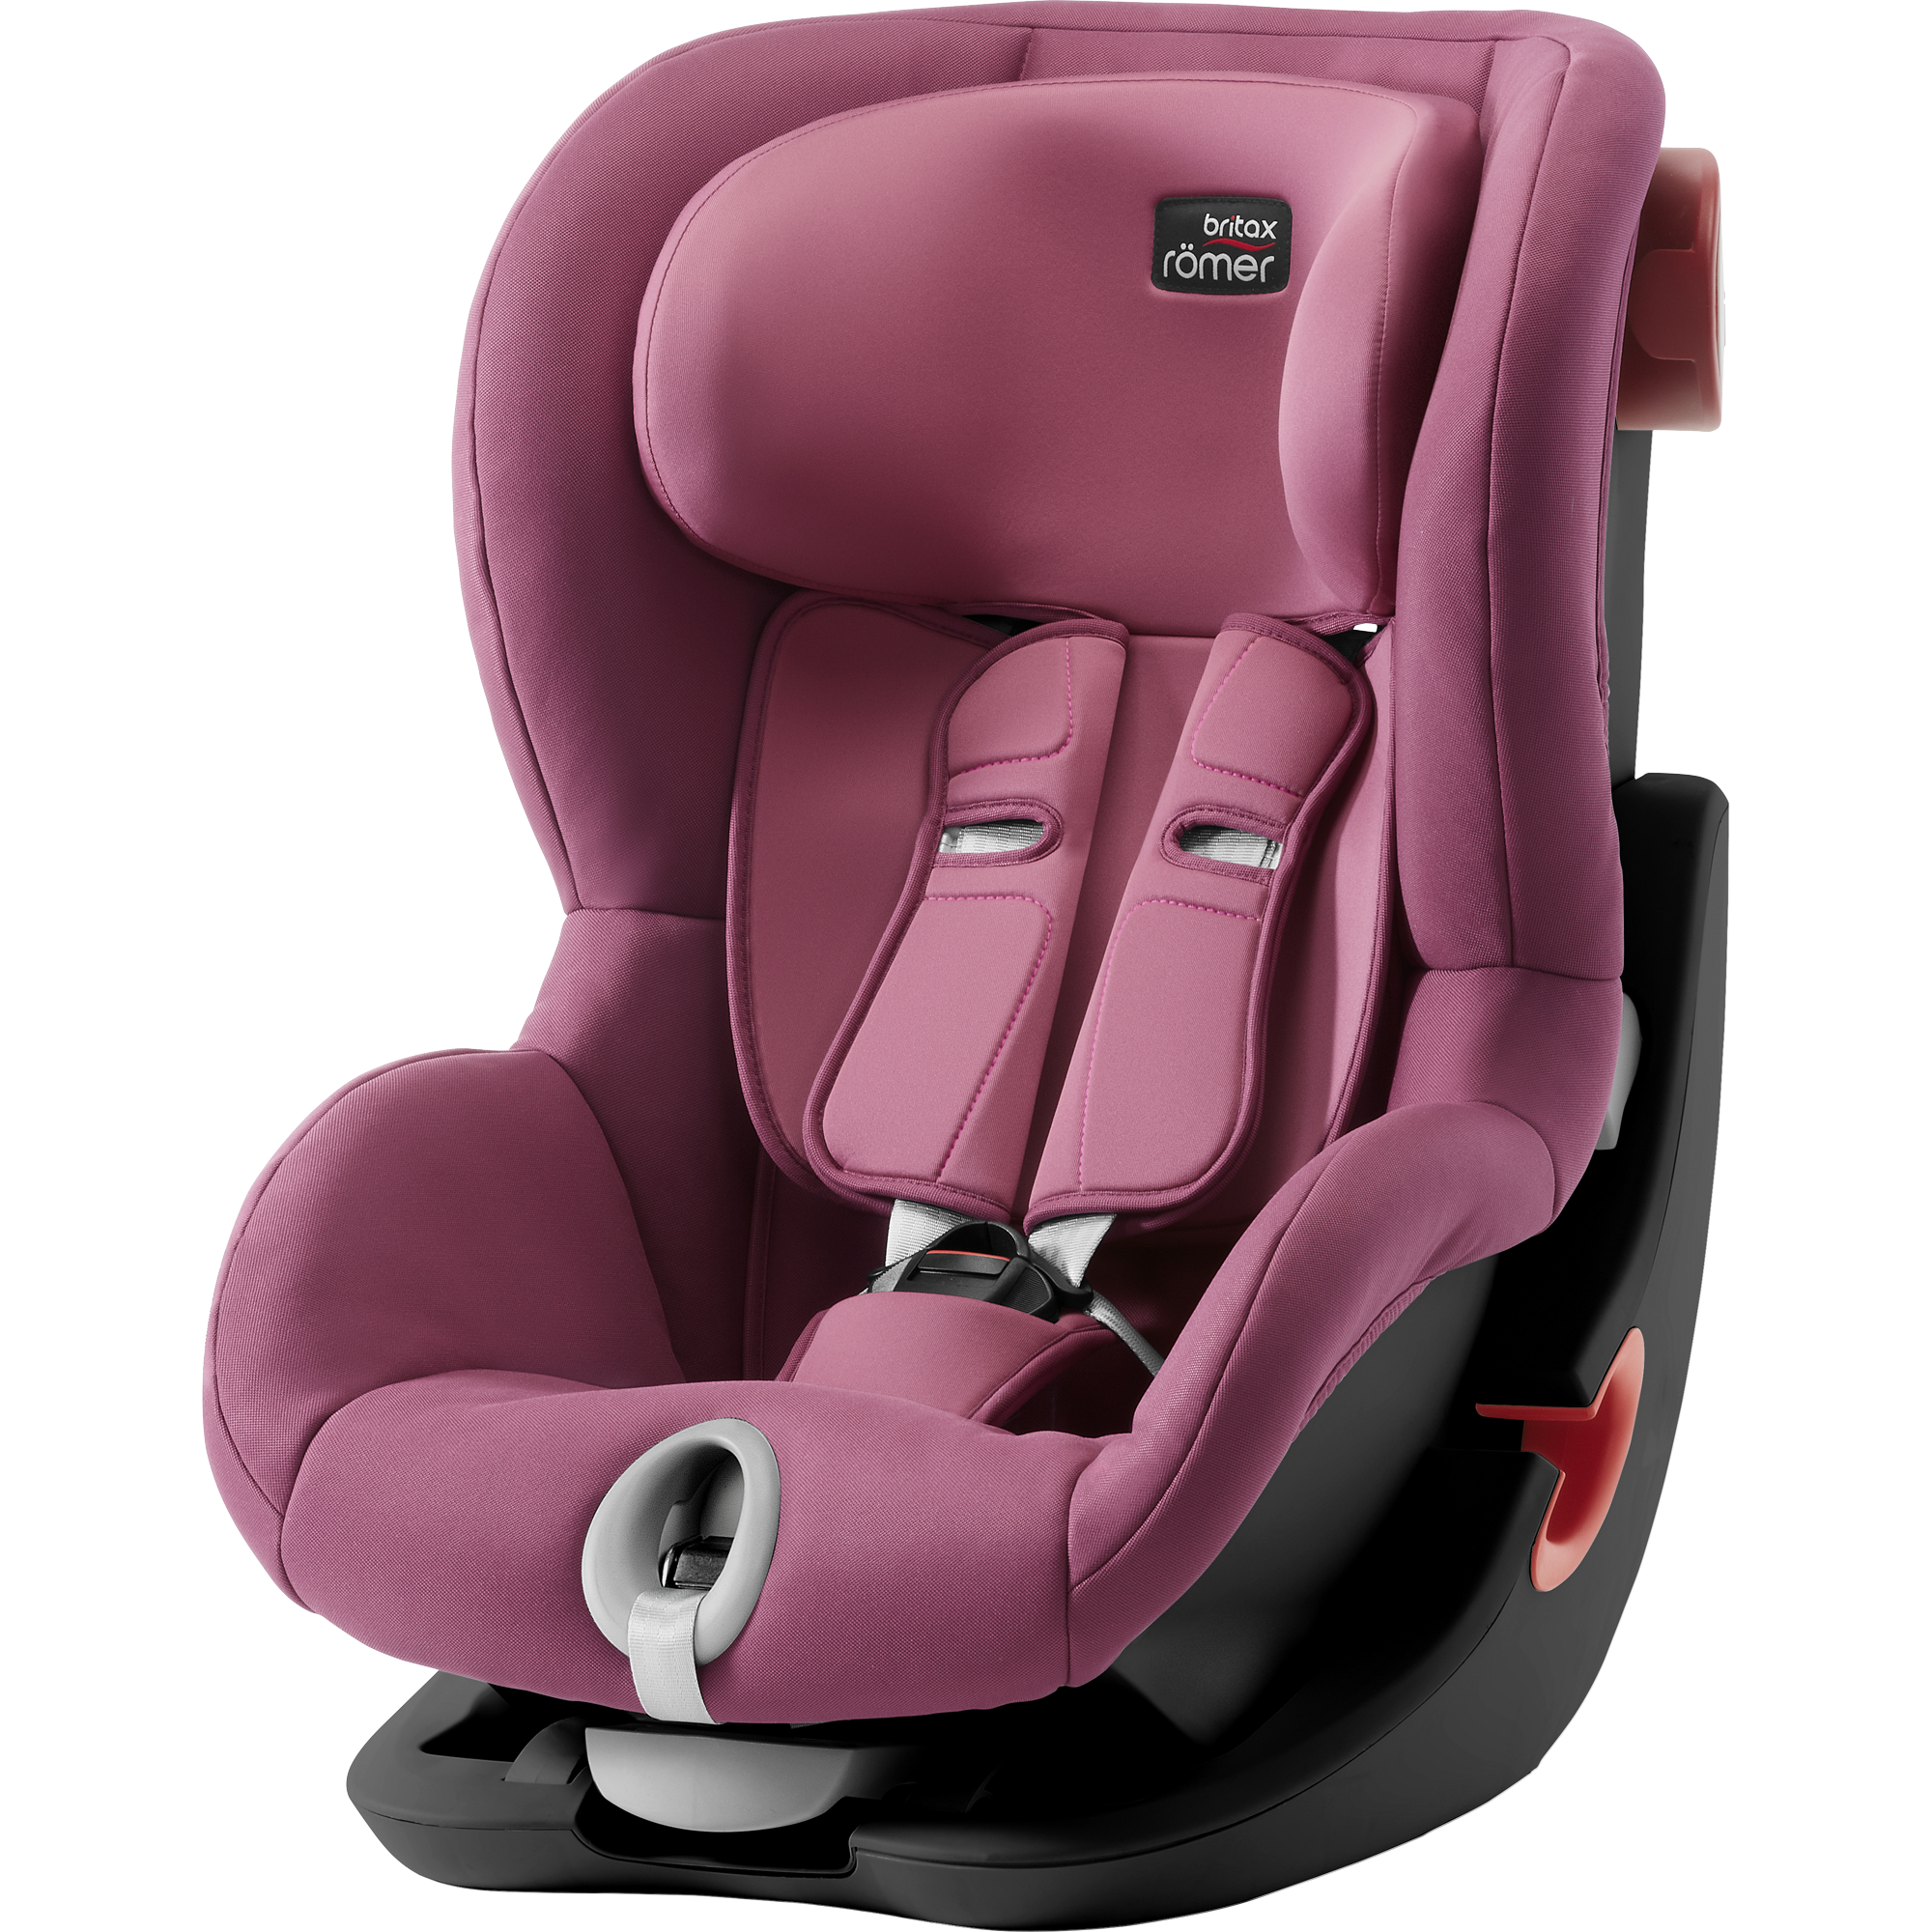 Romer Britax Autosedačka King II Black Edition - Wine Rose